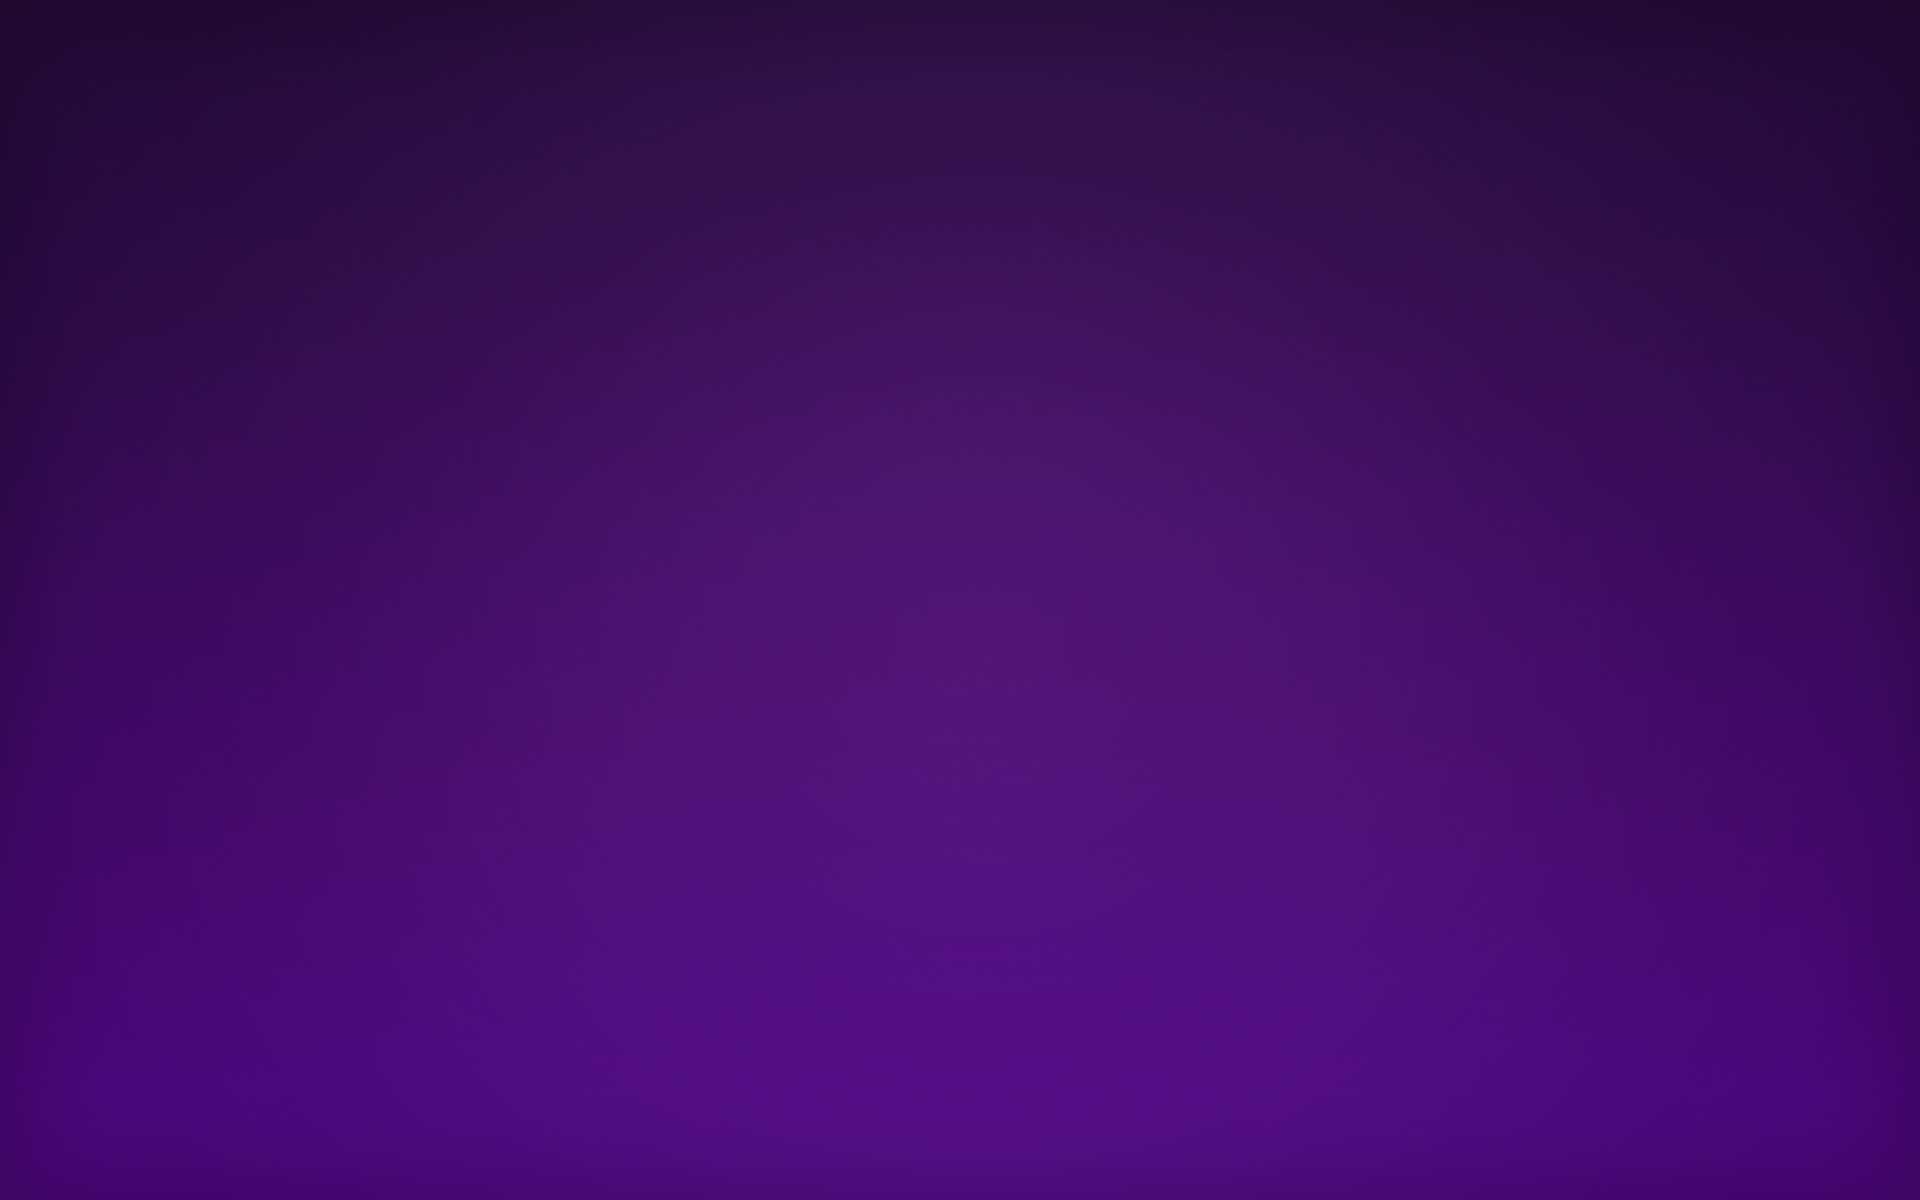 Purple wallpaper widescreen hd 7093 wallpaper walldiskpaper for Purple wallpaper for walls